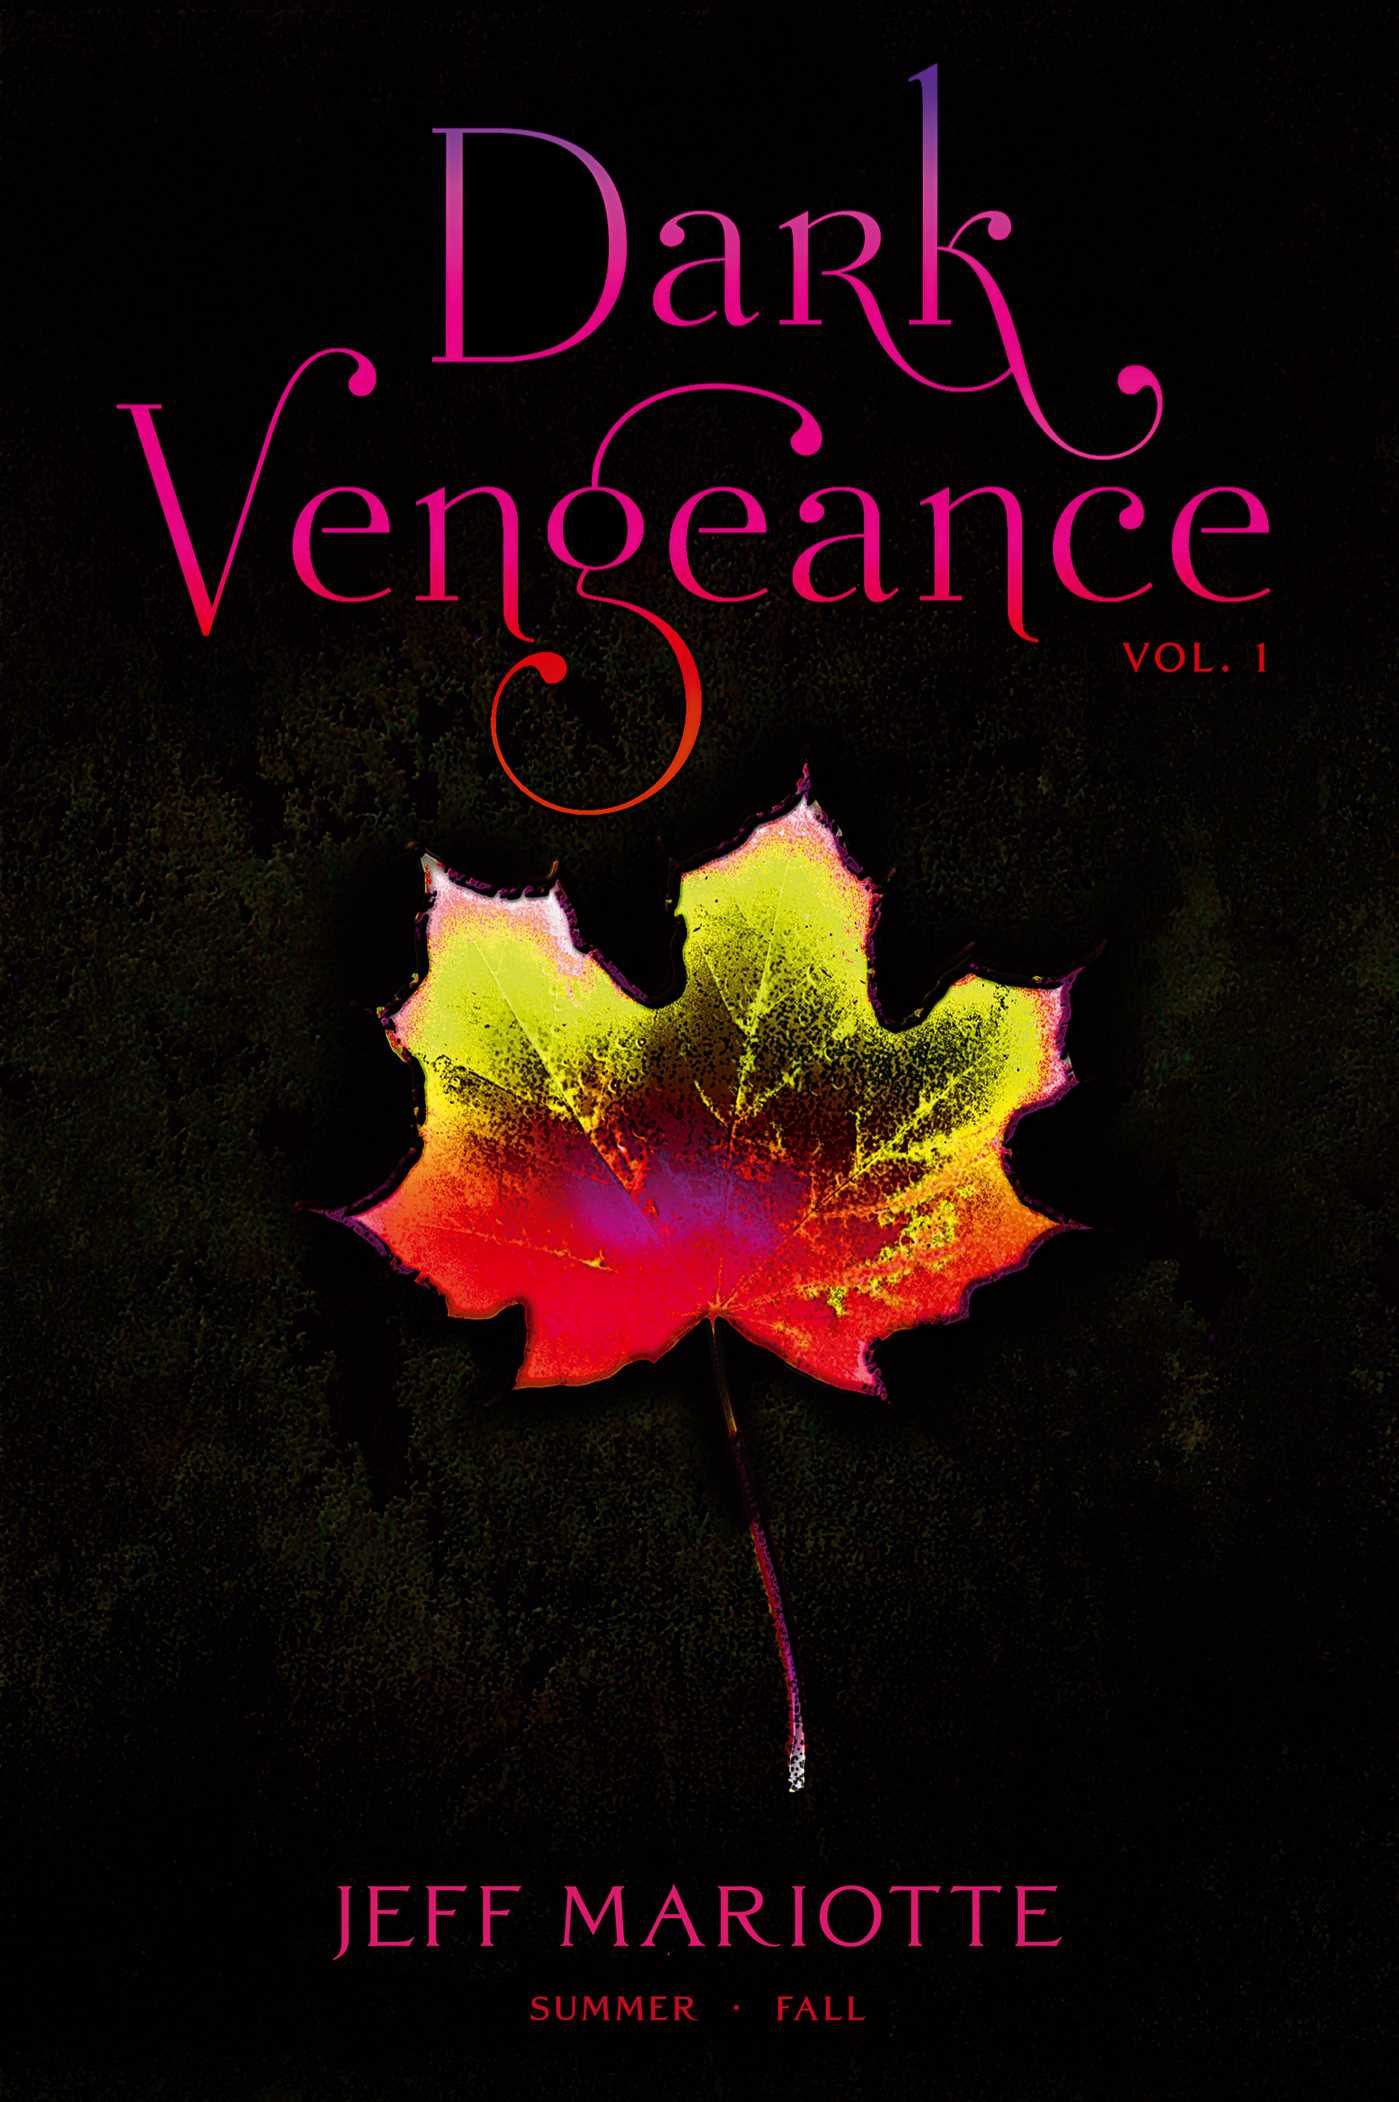 Dark vengeance vol 1 9781442436251 hr